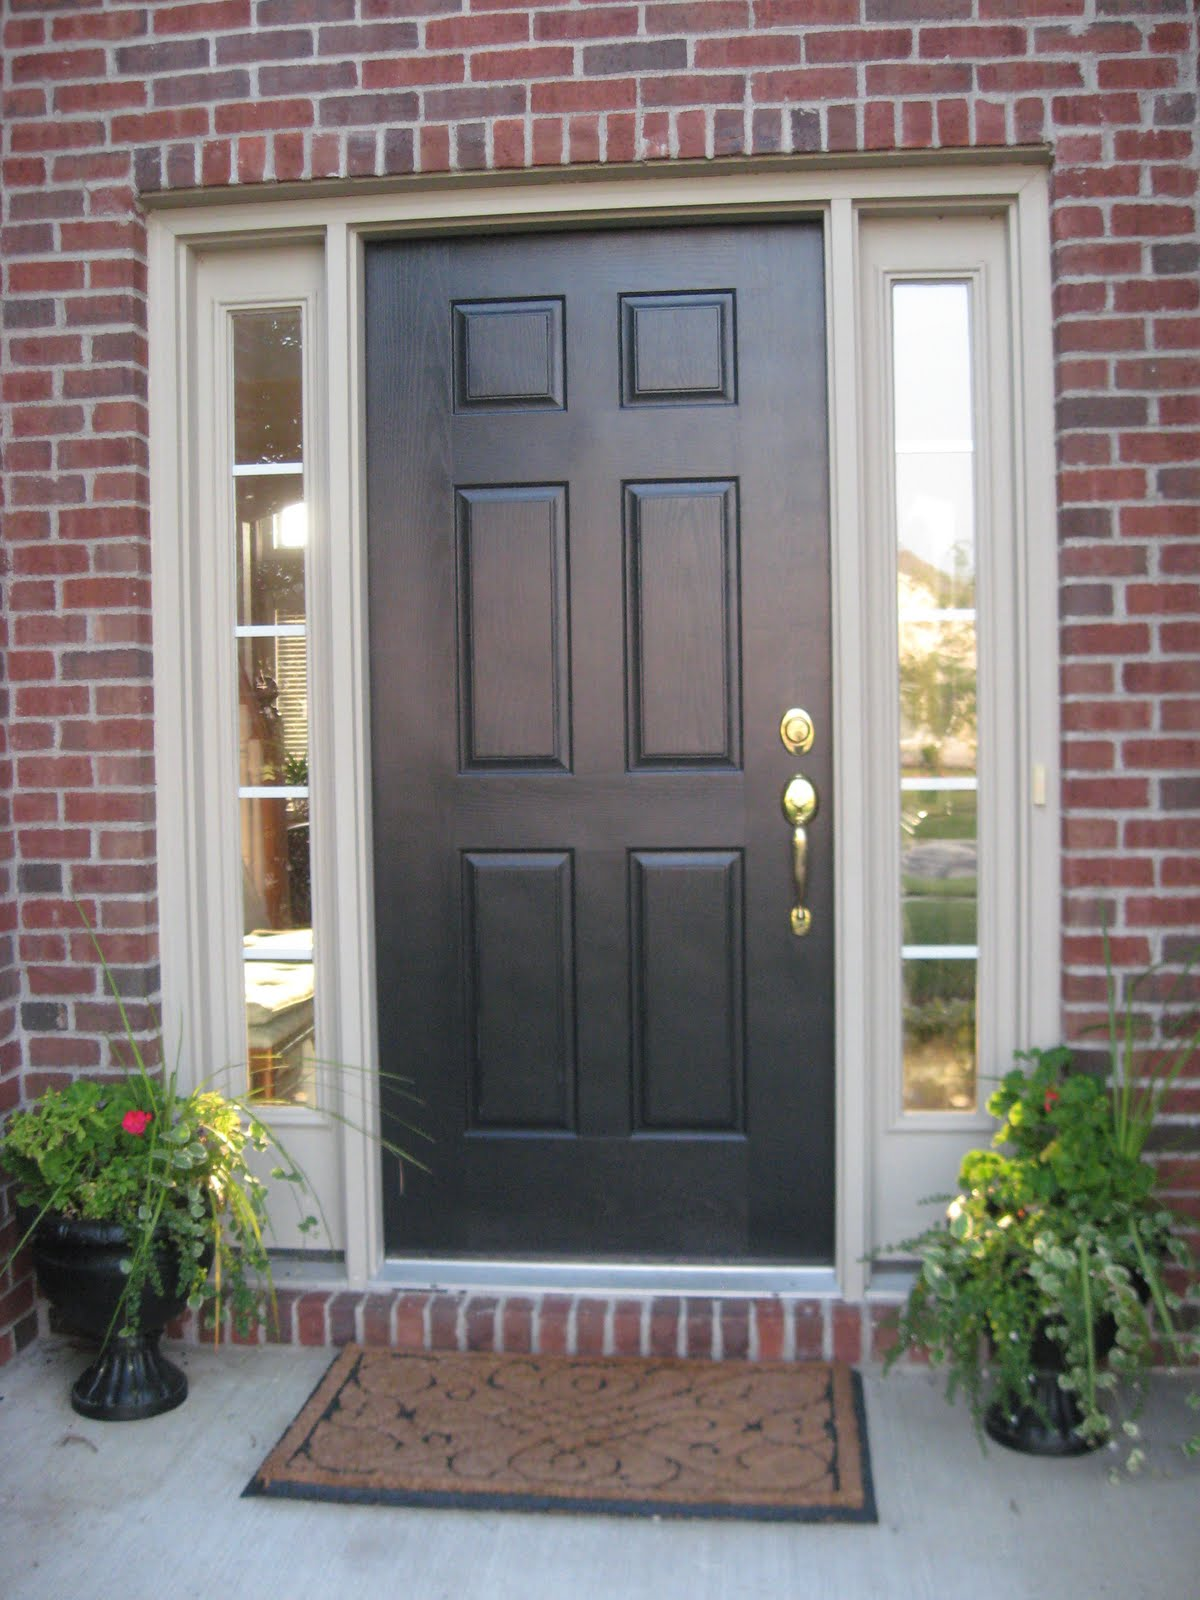 Best Paint For Front Door Stunning With Front Door with Side Lights Pictures